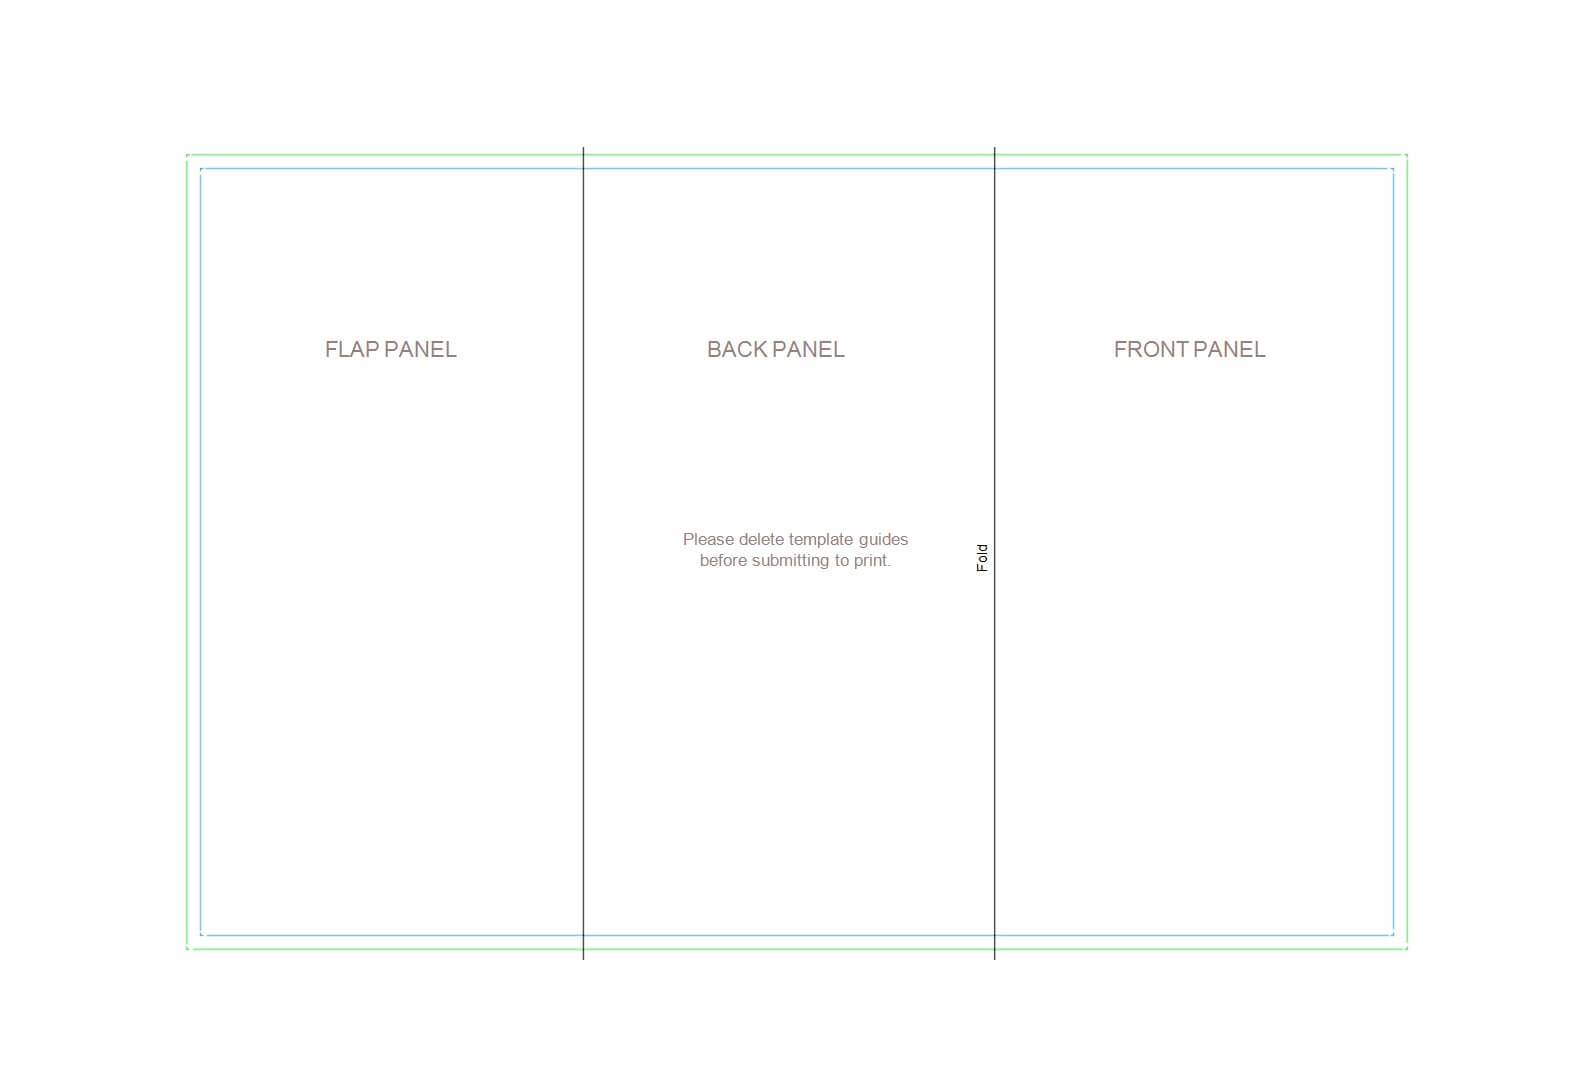 50 Free Pamphlet Templates [Word / Google Docs] ᐅ Template Lab Intended For Brochure Template Google Drive